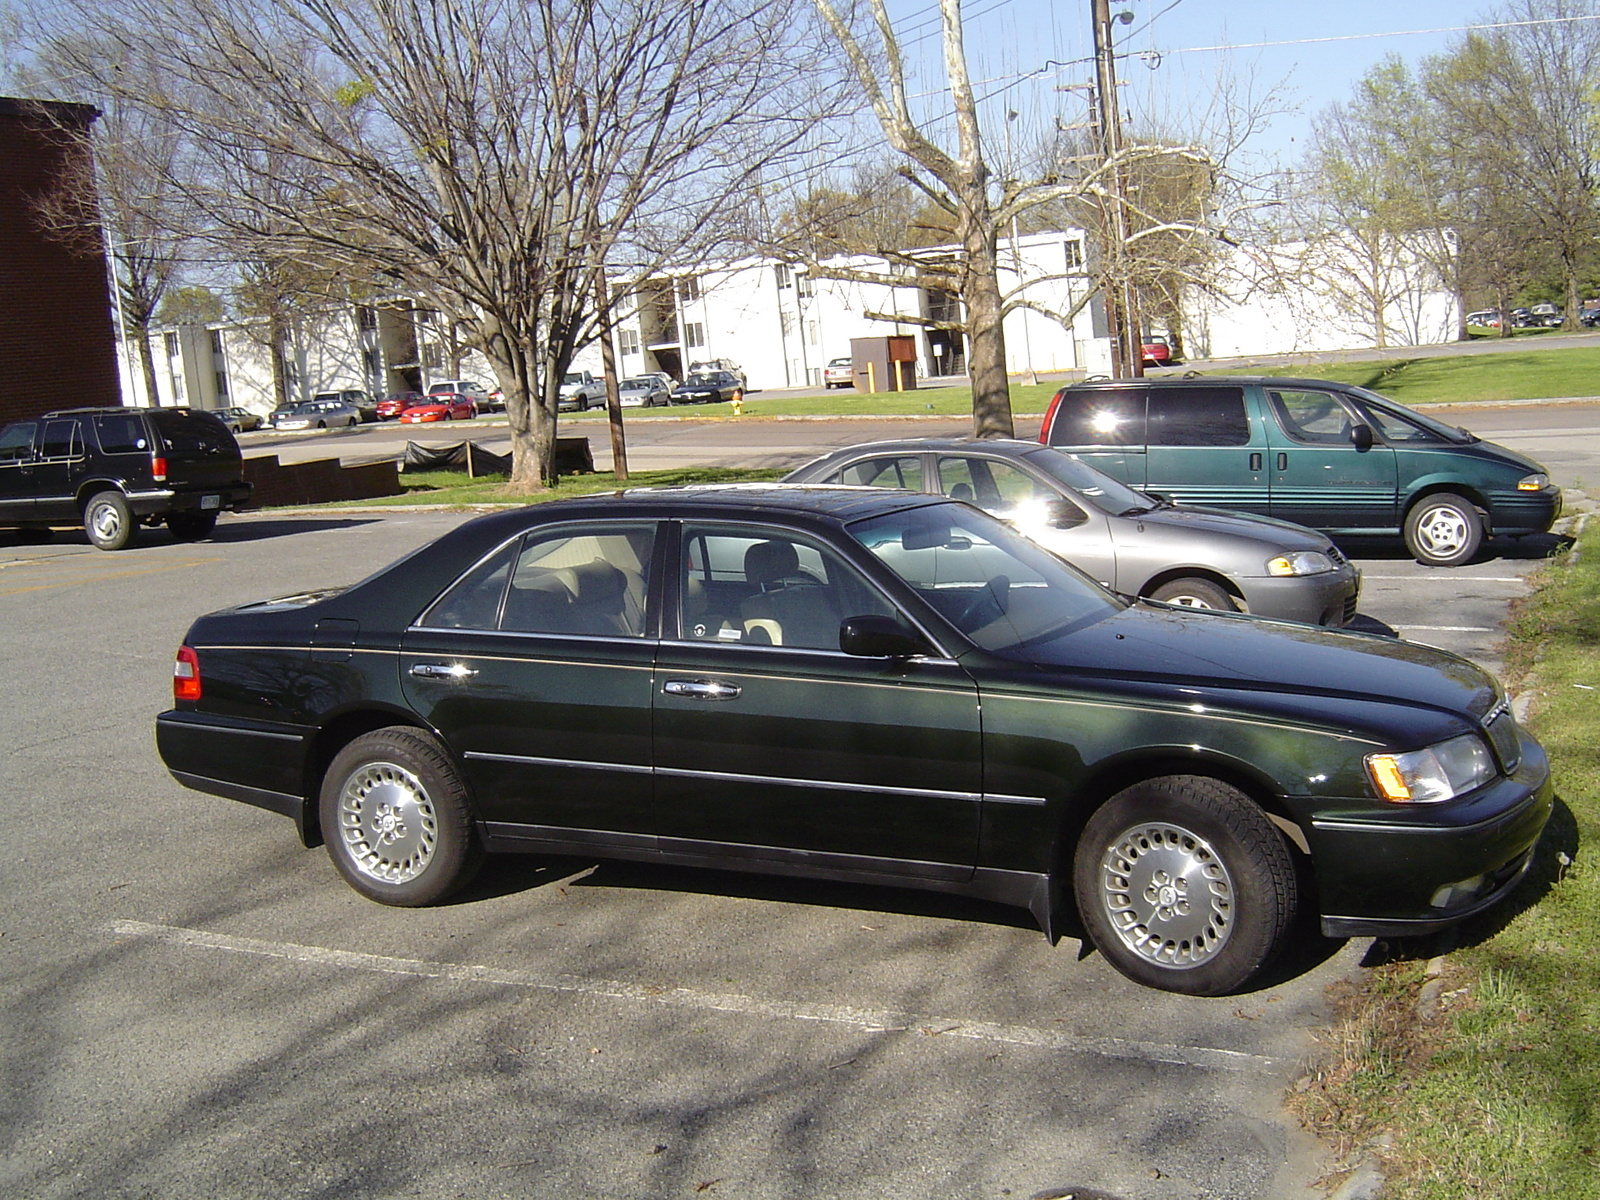 1997 Infiniti Q45 4 Dr STD Sedan picture